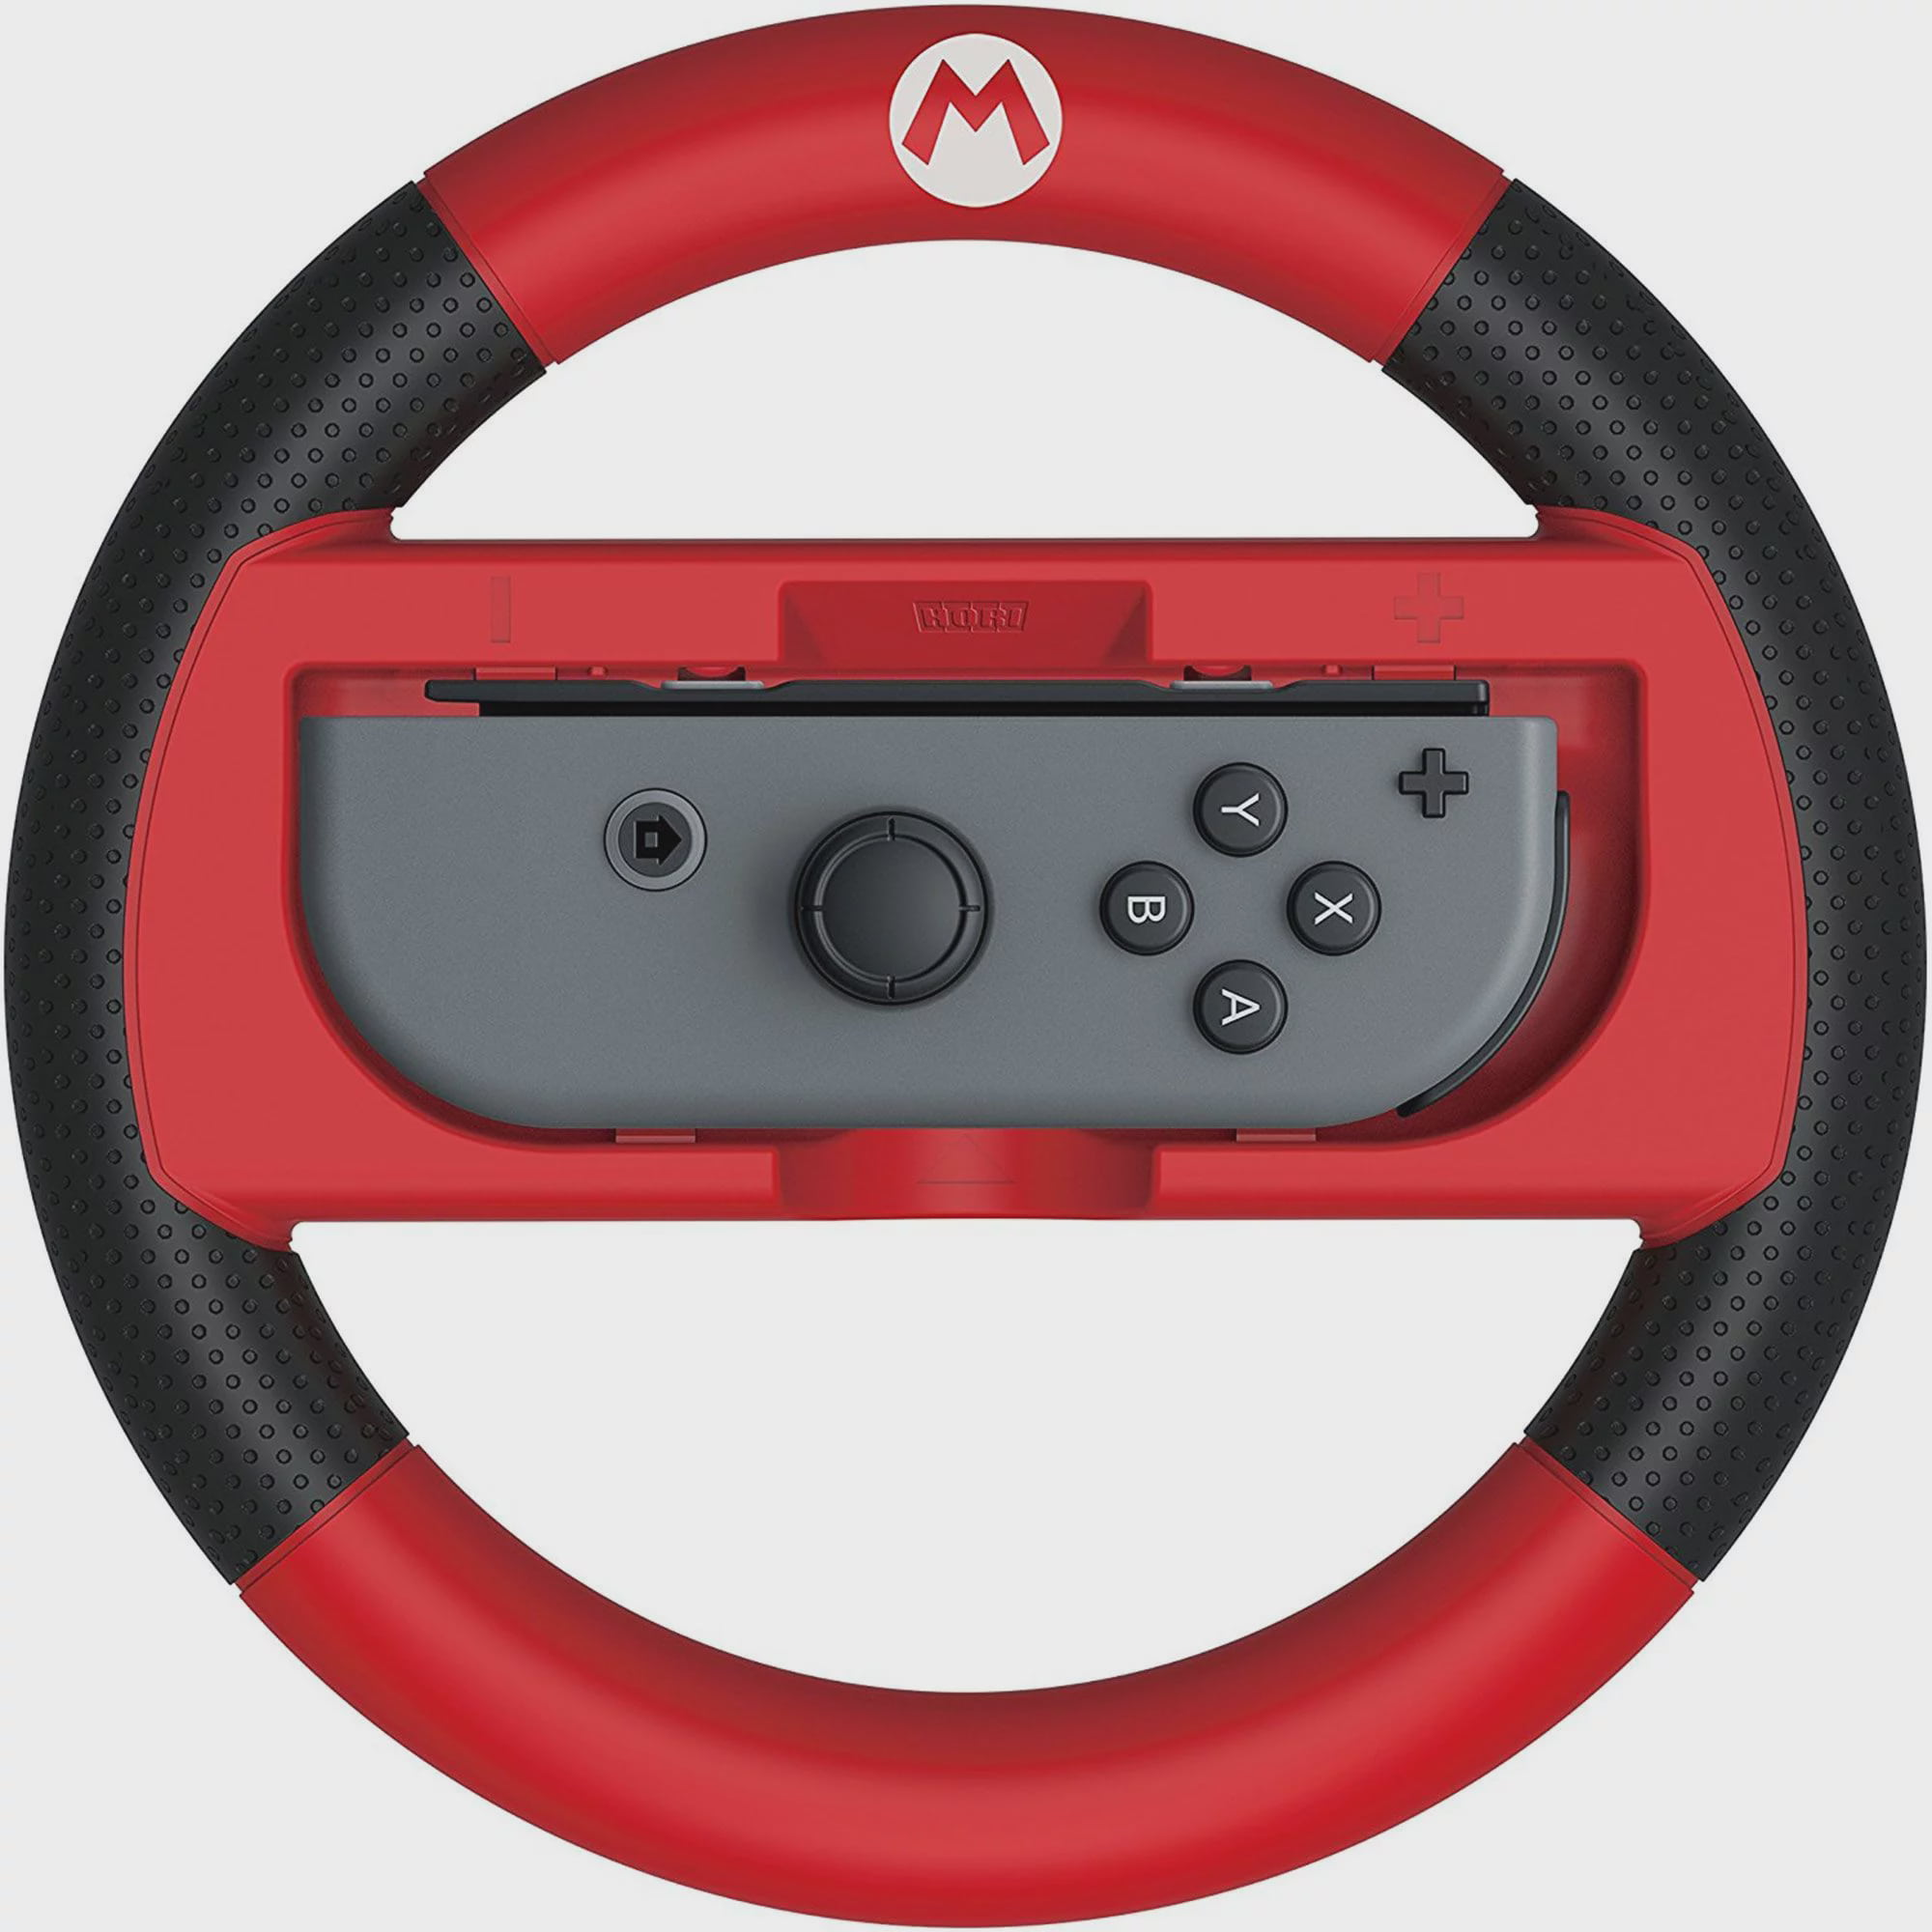 Hori Mario Kart 8 Deluxe - Mario Racing Wheel - Controller forNintendo Switch